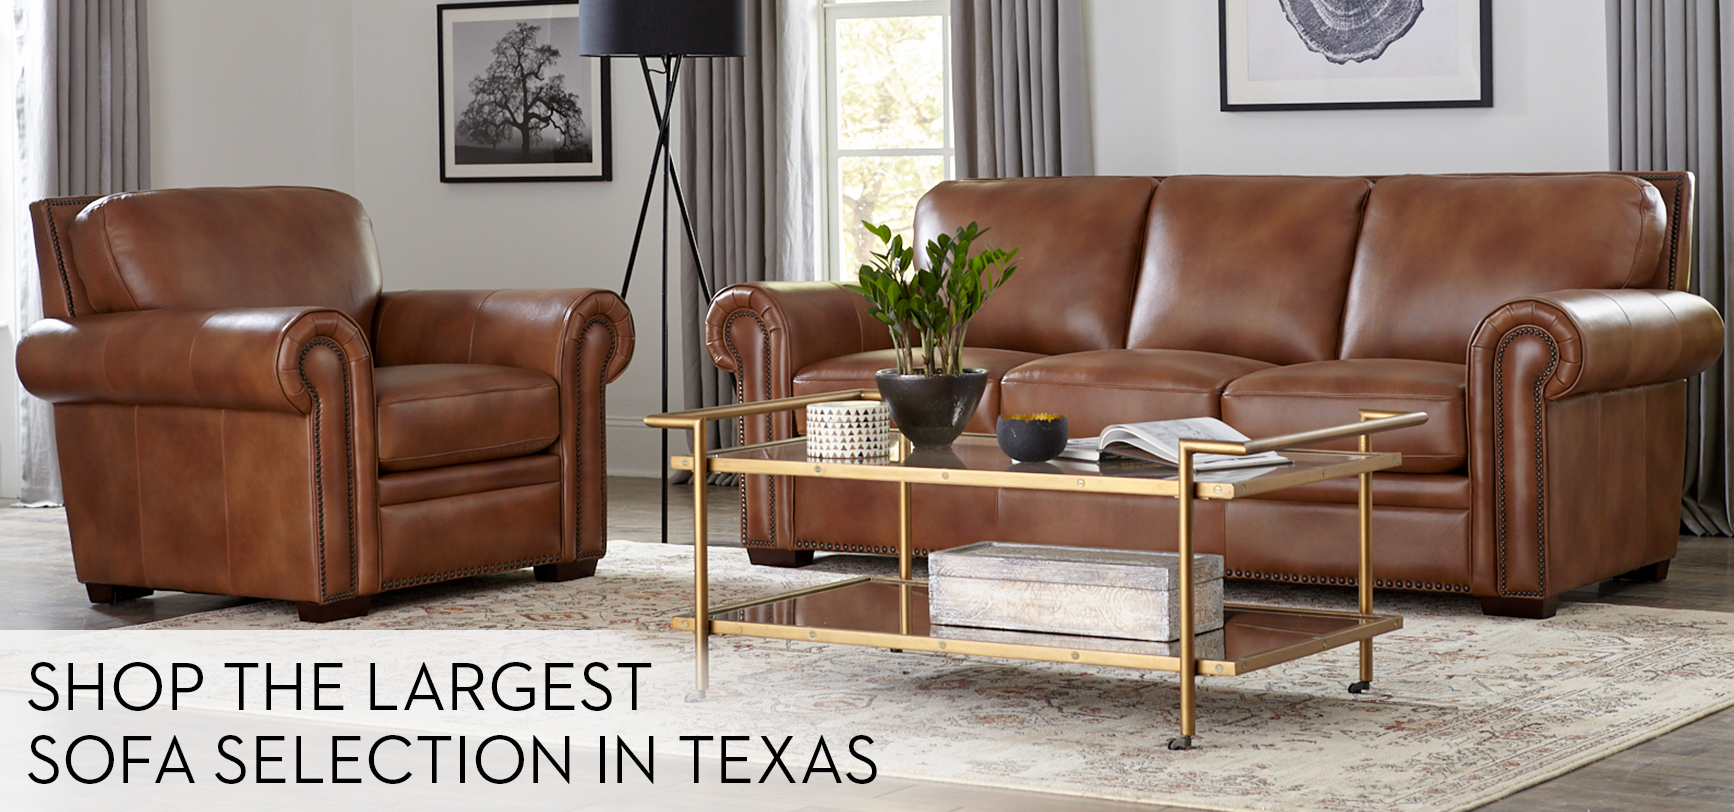 texas largest selection of sofas and sectionals